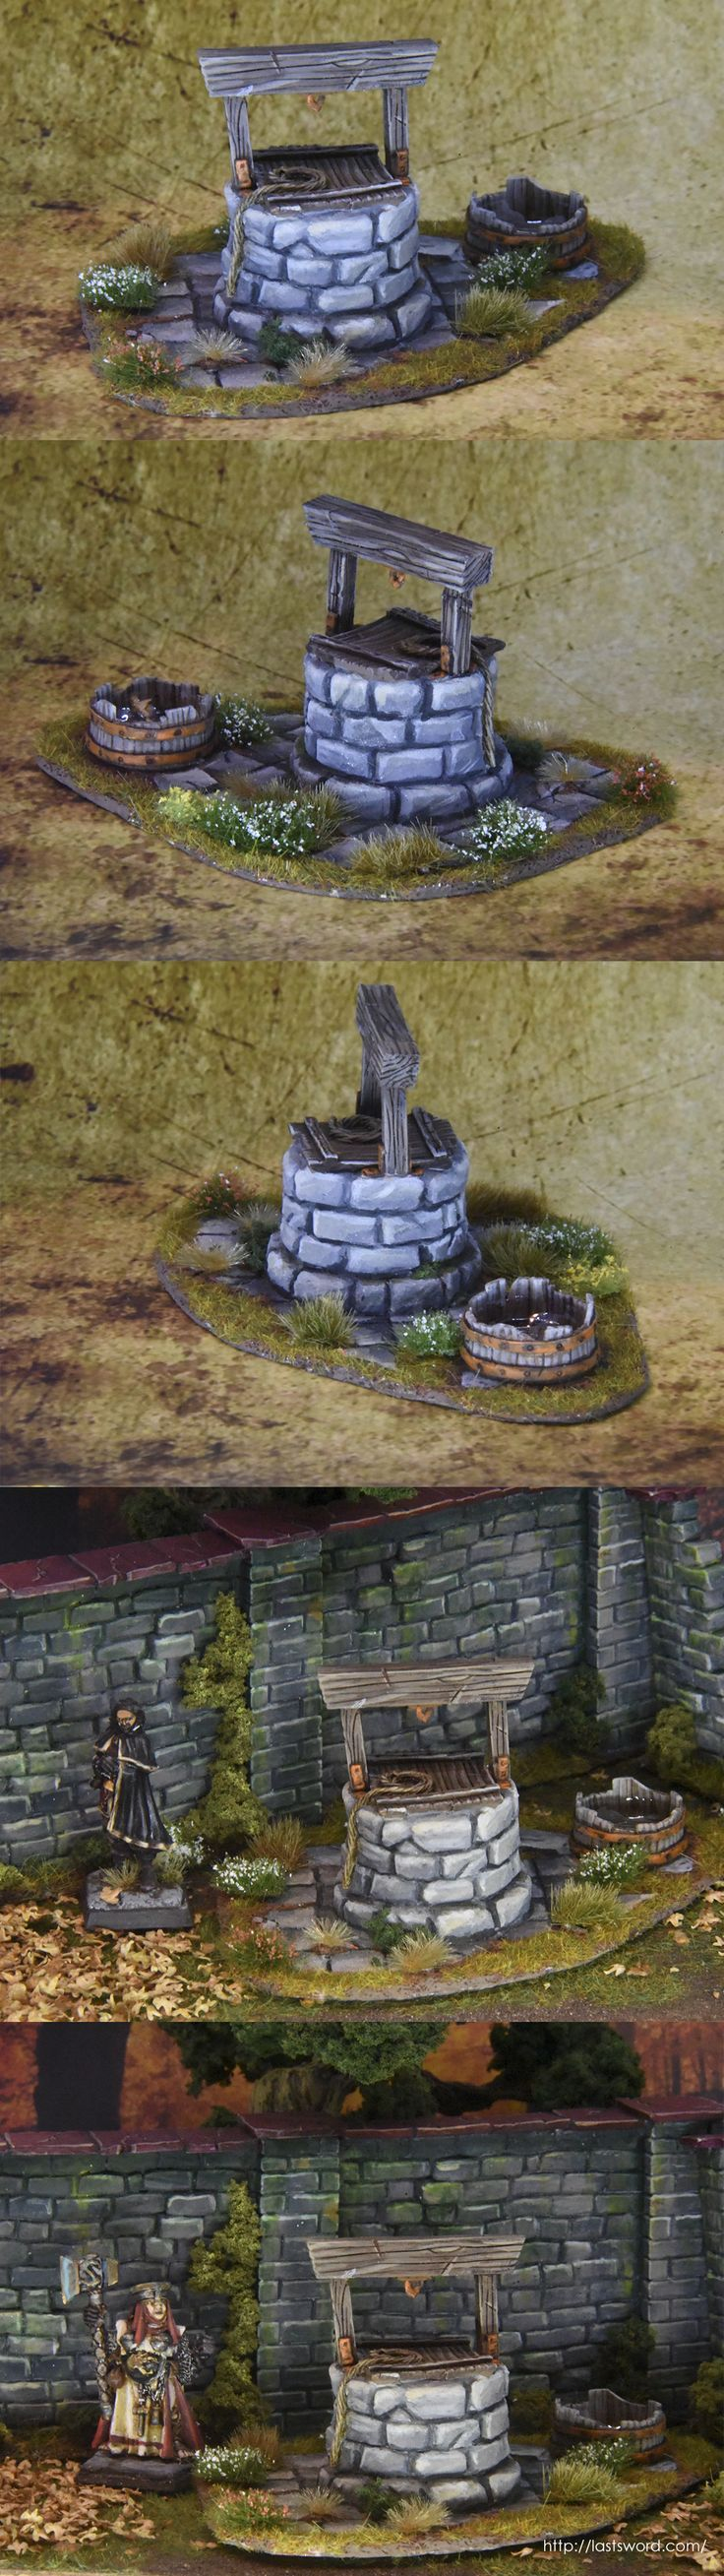 Water Well for Warhammer Fantasy, Mordheim and 1650 A capa y espada and others fantasy wargames.